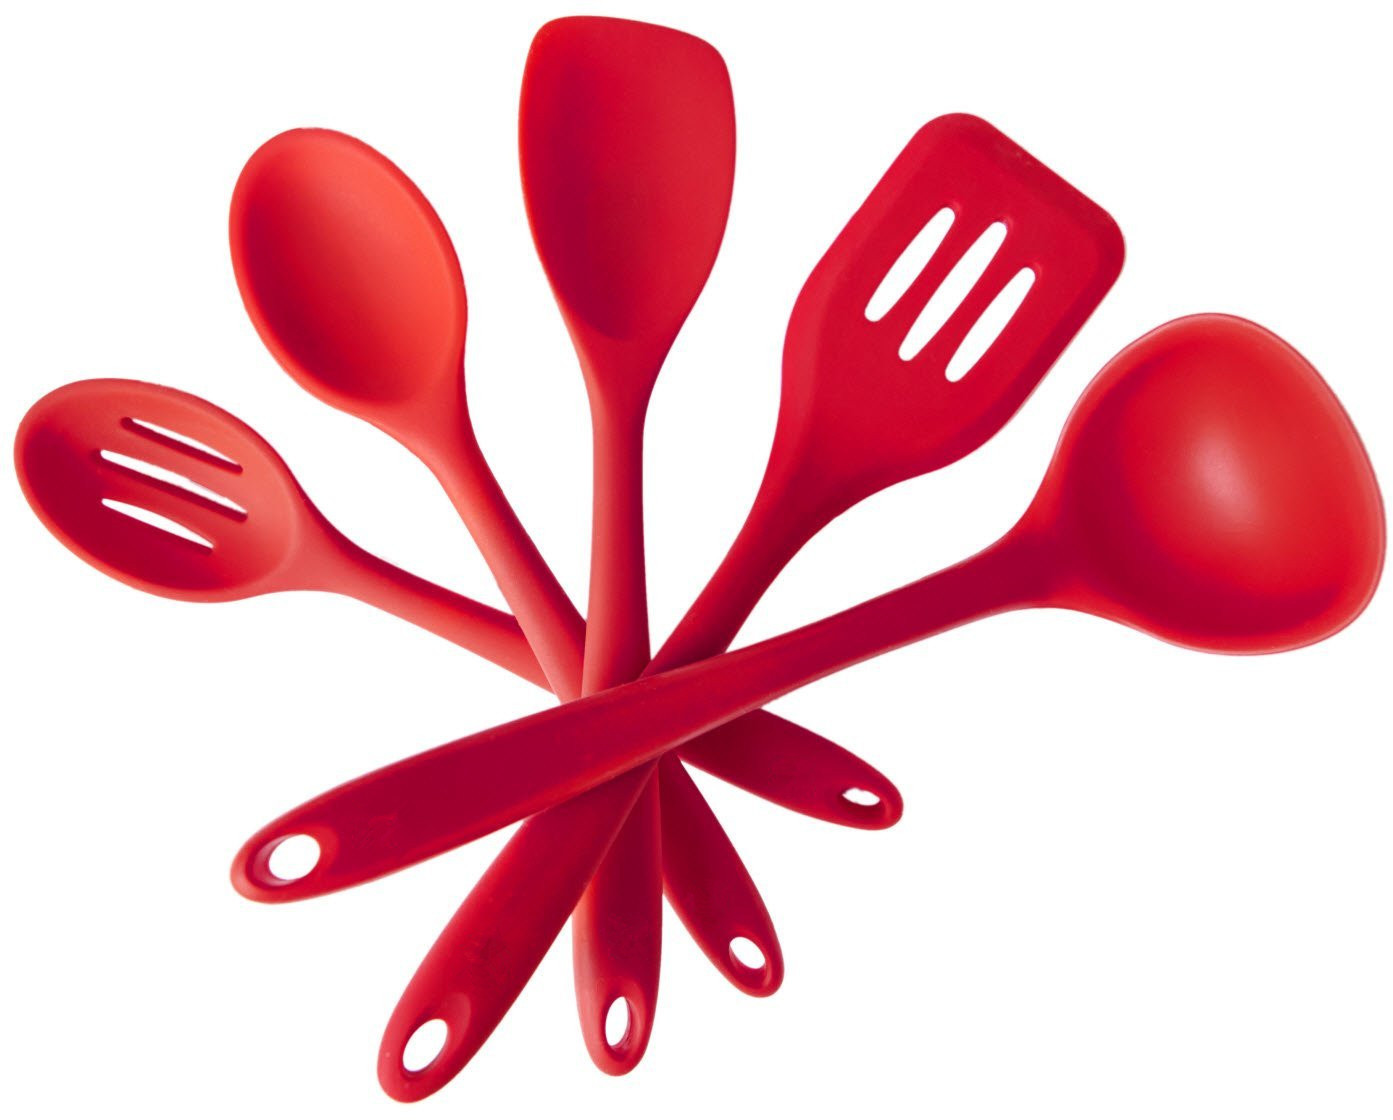 Baking Utensils Clipart